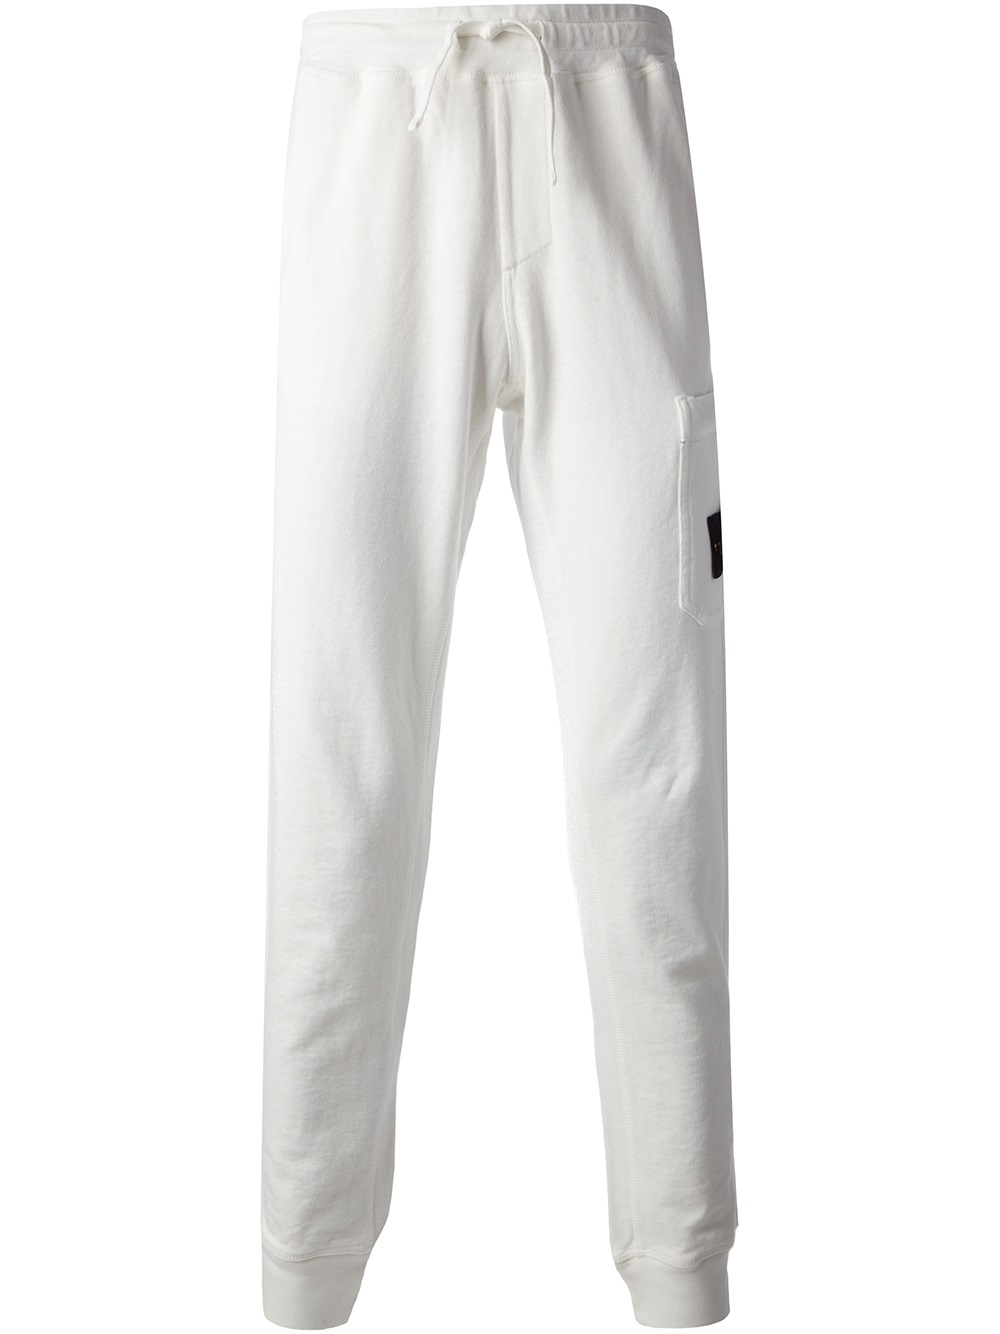 Stone island Track Pants in White for Men | Lyst